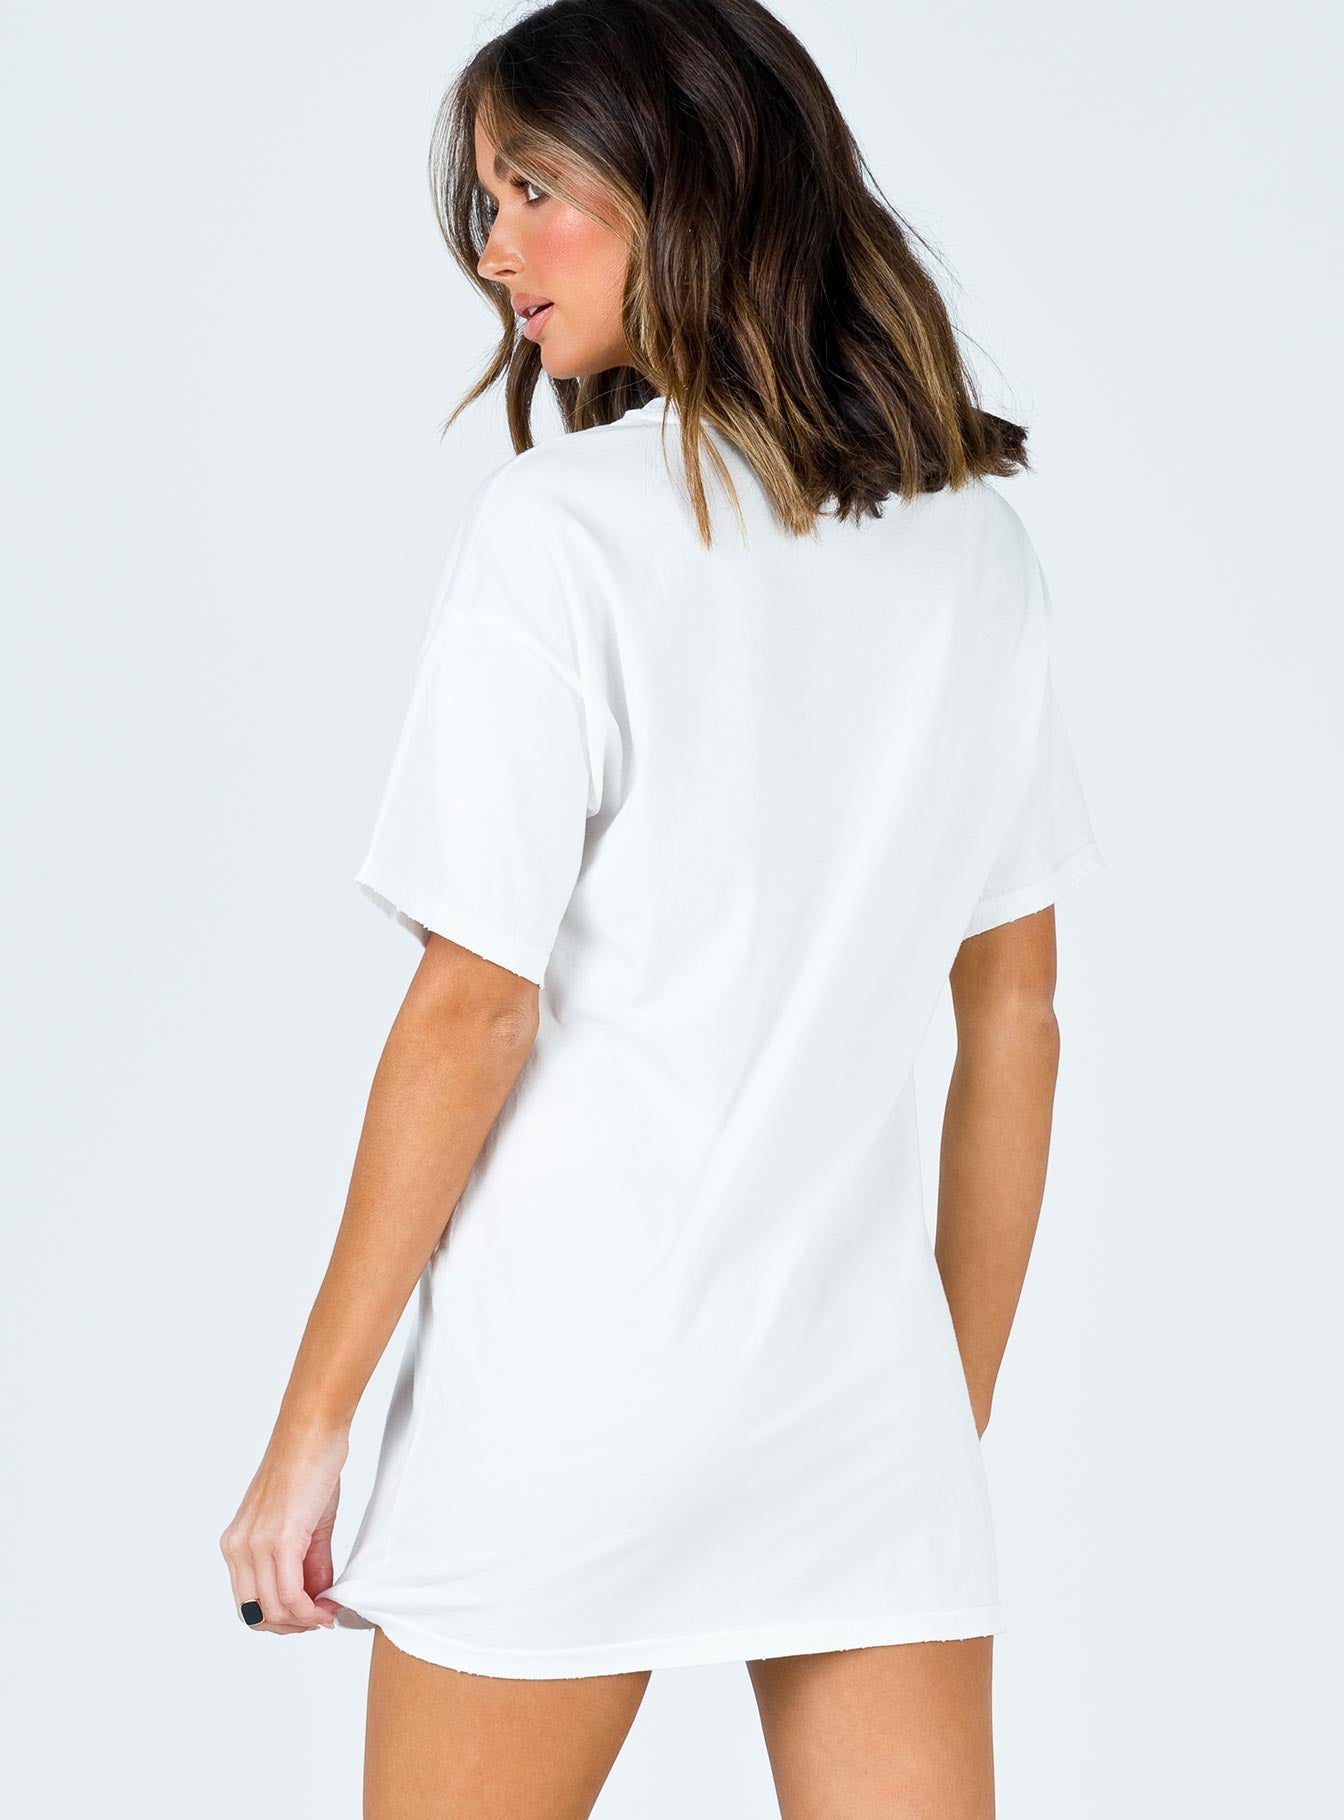 Speed Racer Tee Mini Dress